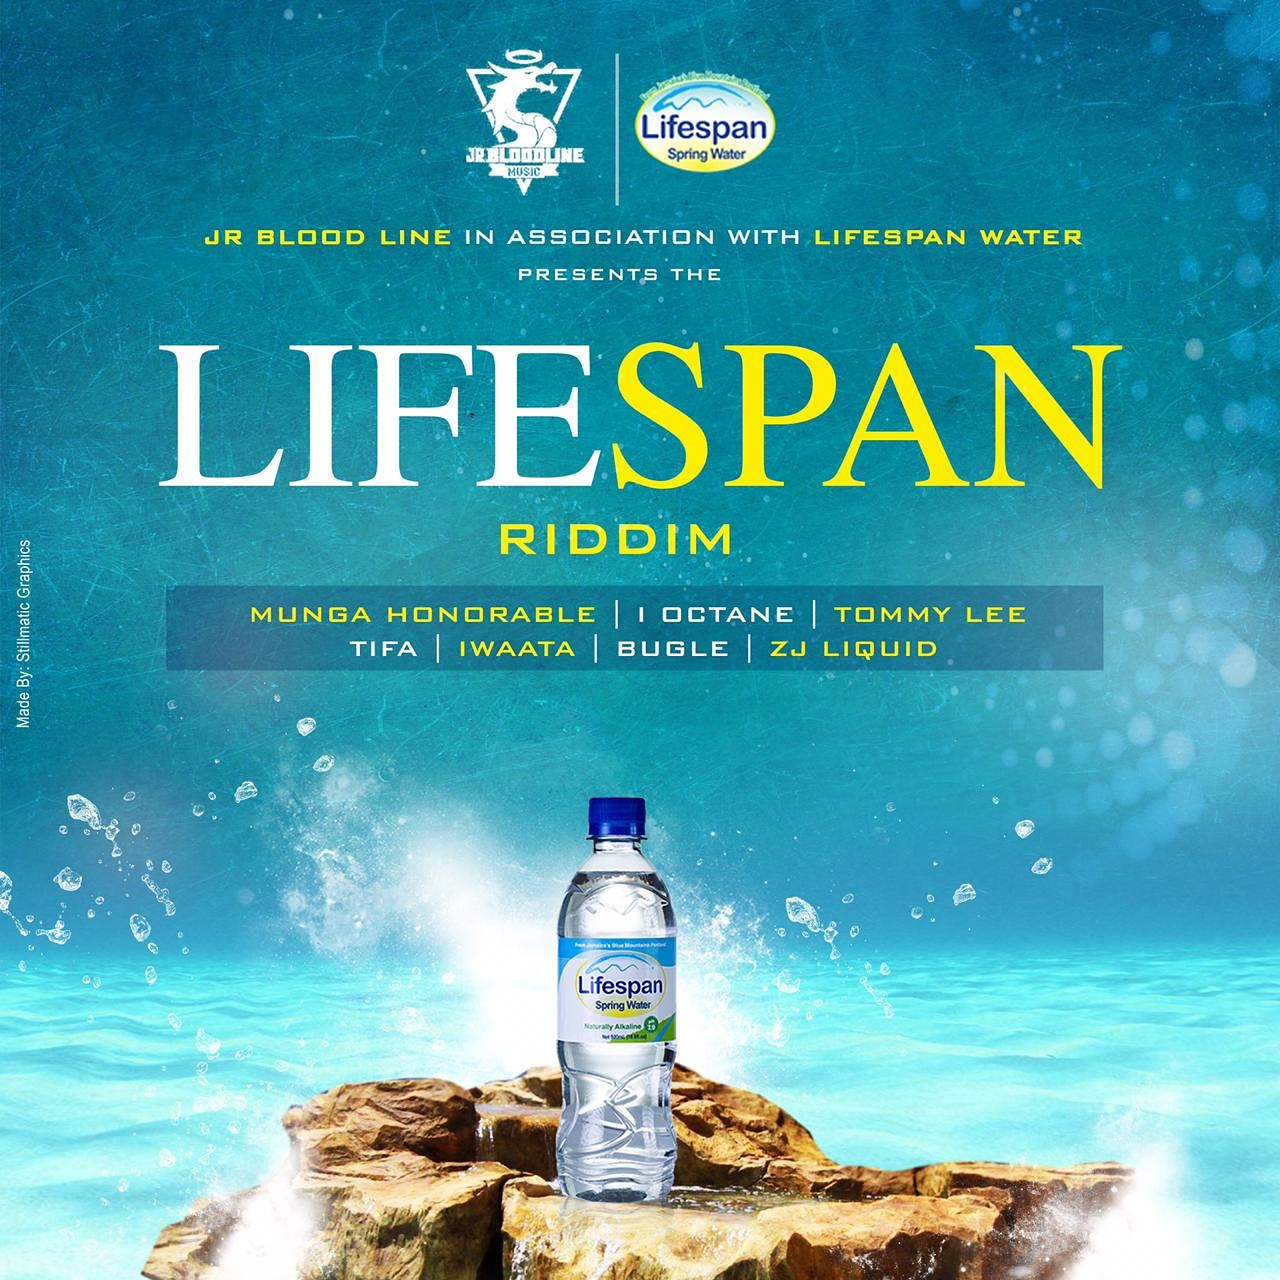 LIFESPAN SPRING WATER DABBLES IN DANCEHALL - Street Cred Jamaica